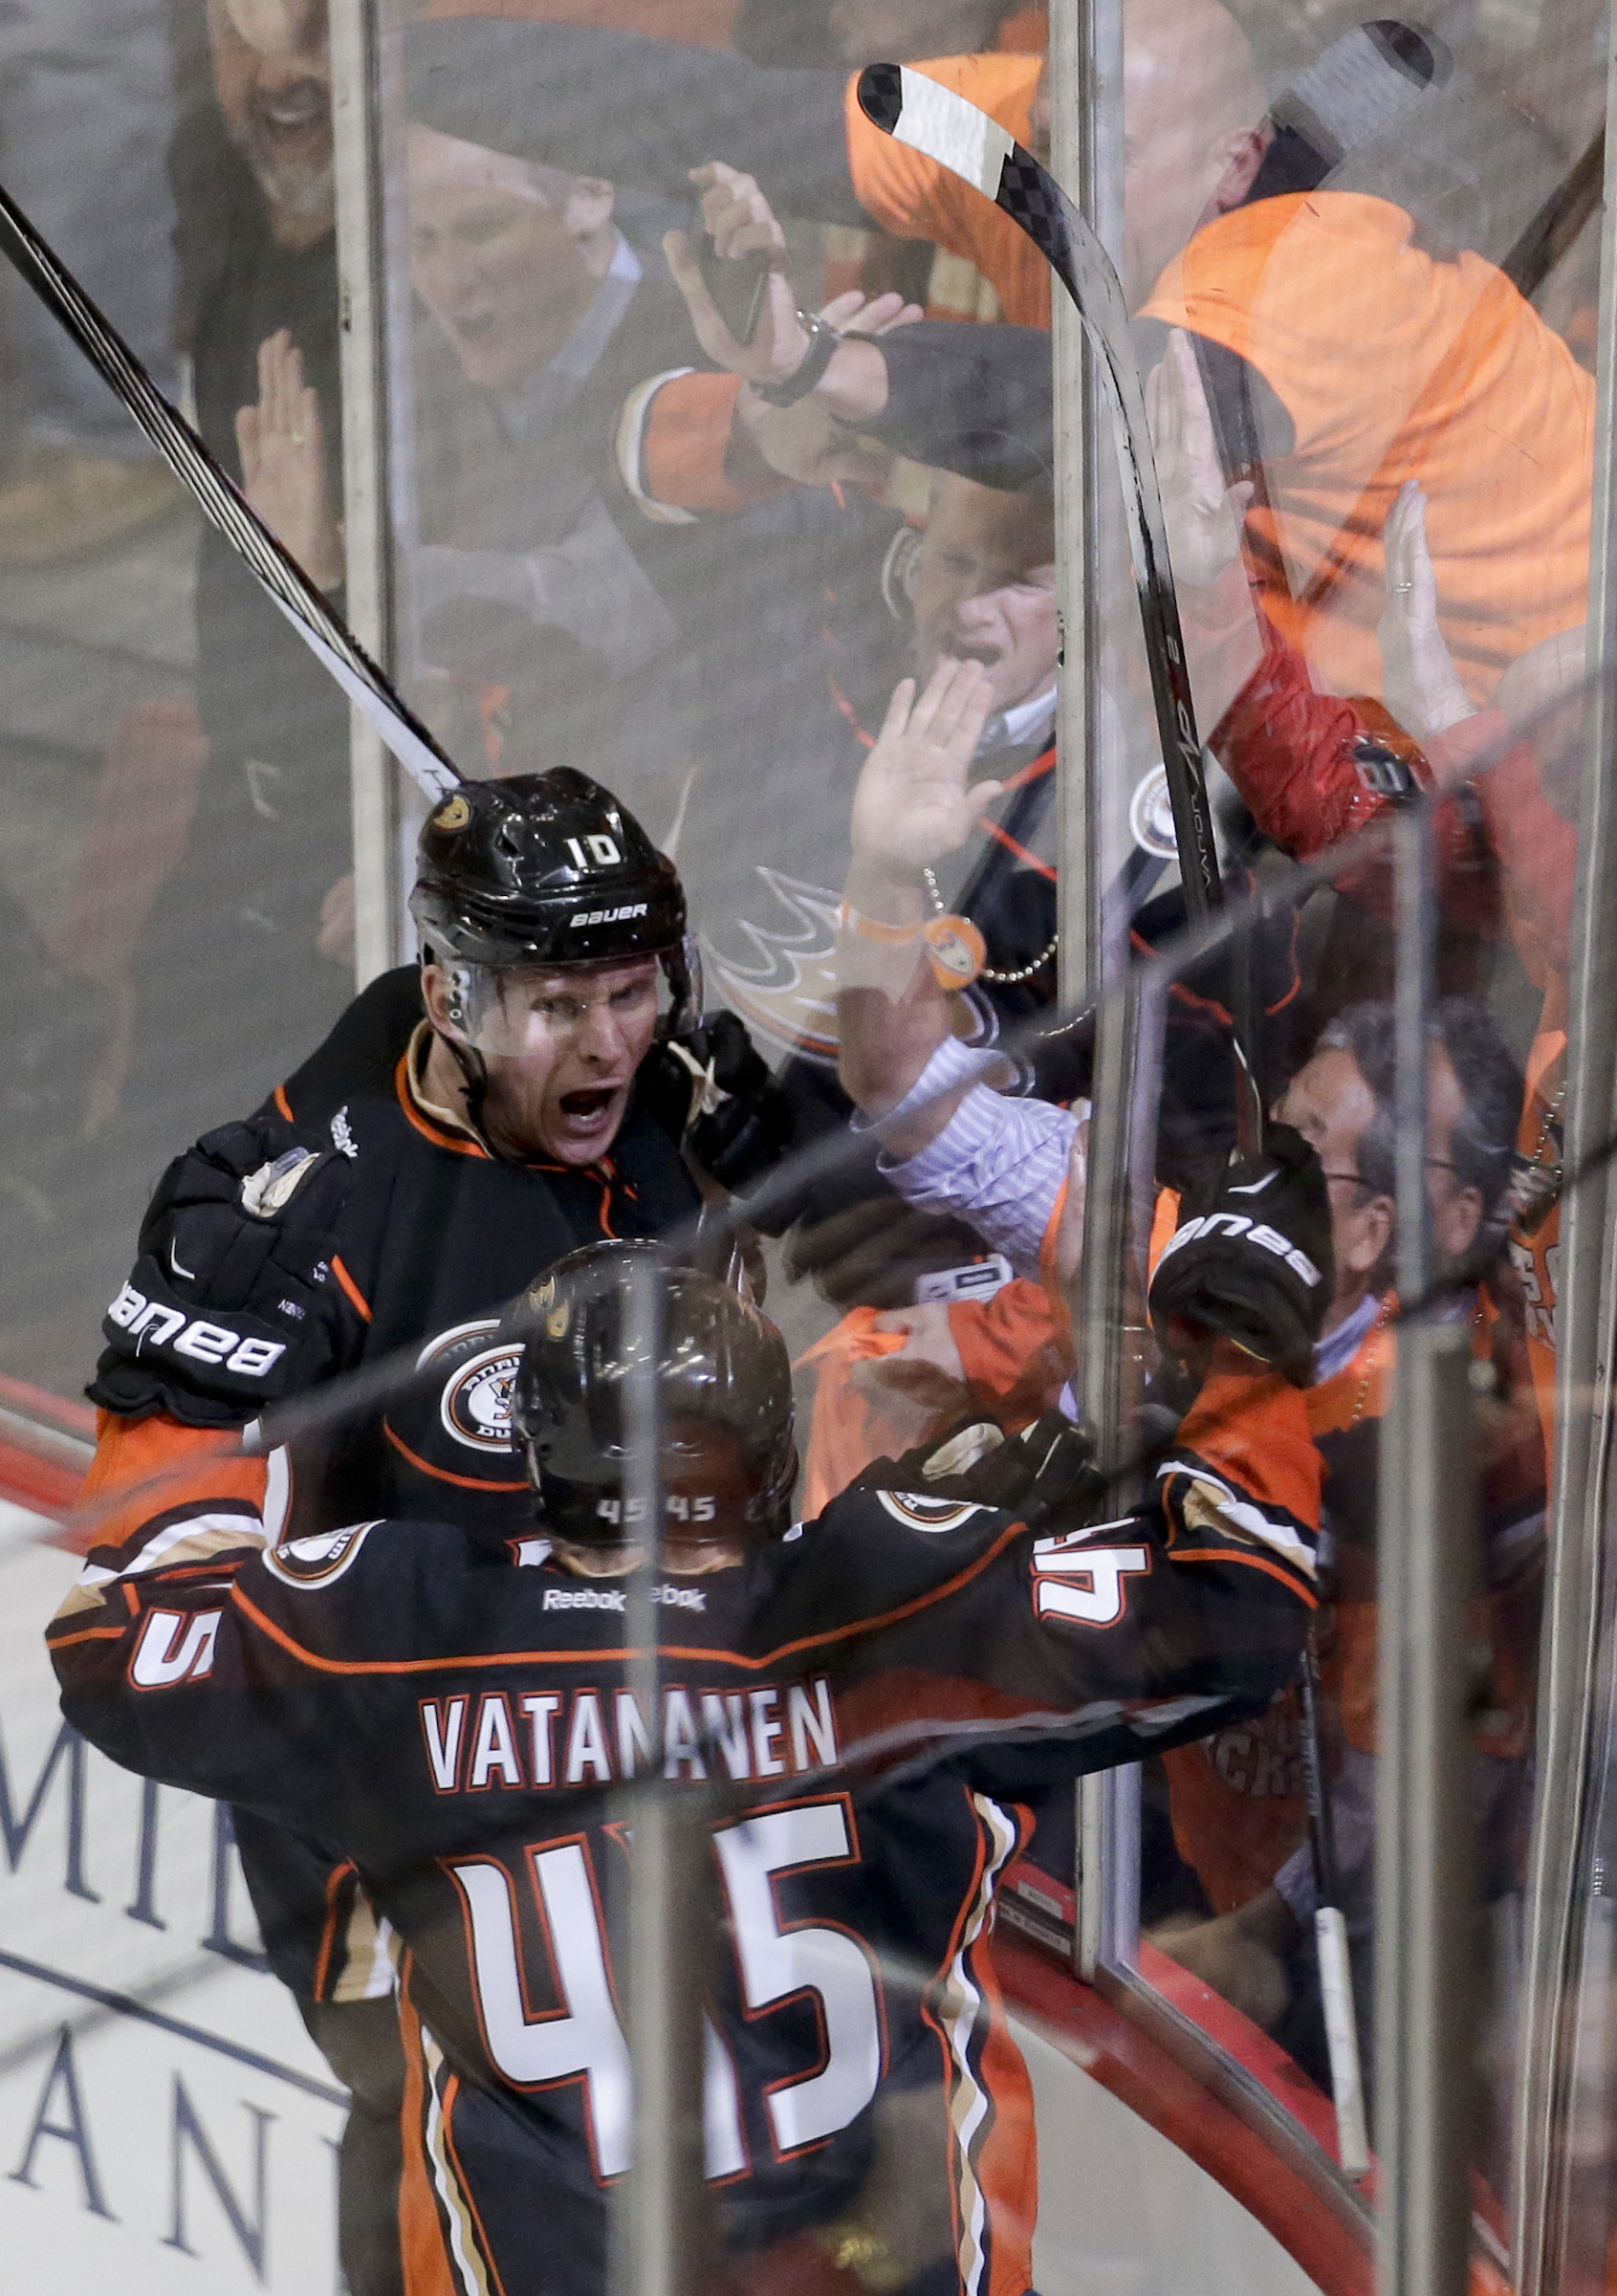 Anaheim Ducks right wing Corey Perry, top, celebrates his first goal with defenseman Sami Vatanen against the Winnipeg Jets during the third period of Game 1 of a first-round NHL hockey playoff series in Anaheim, Calif., Thursday, April 16, 2015. (AP Phot